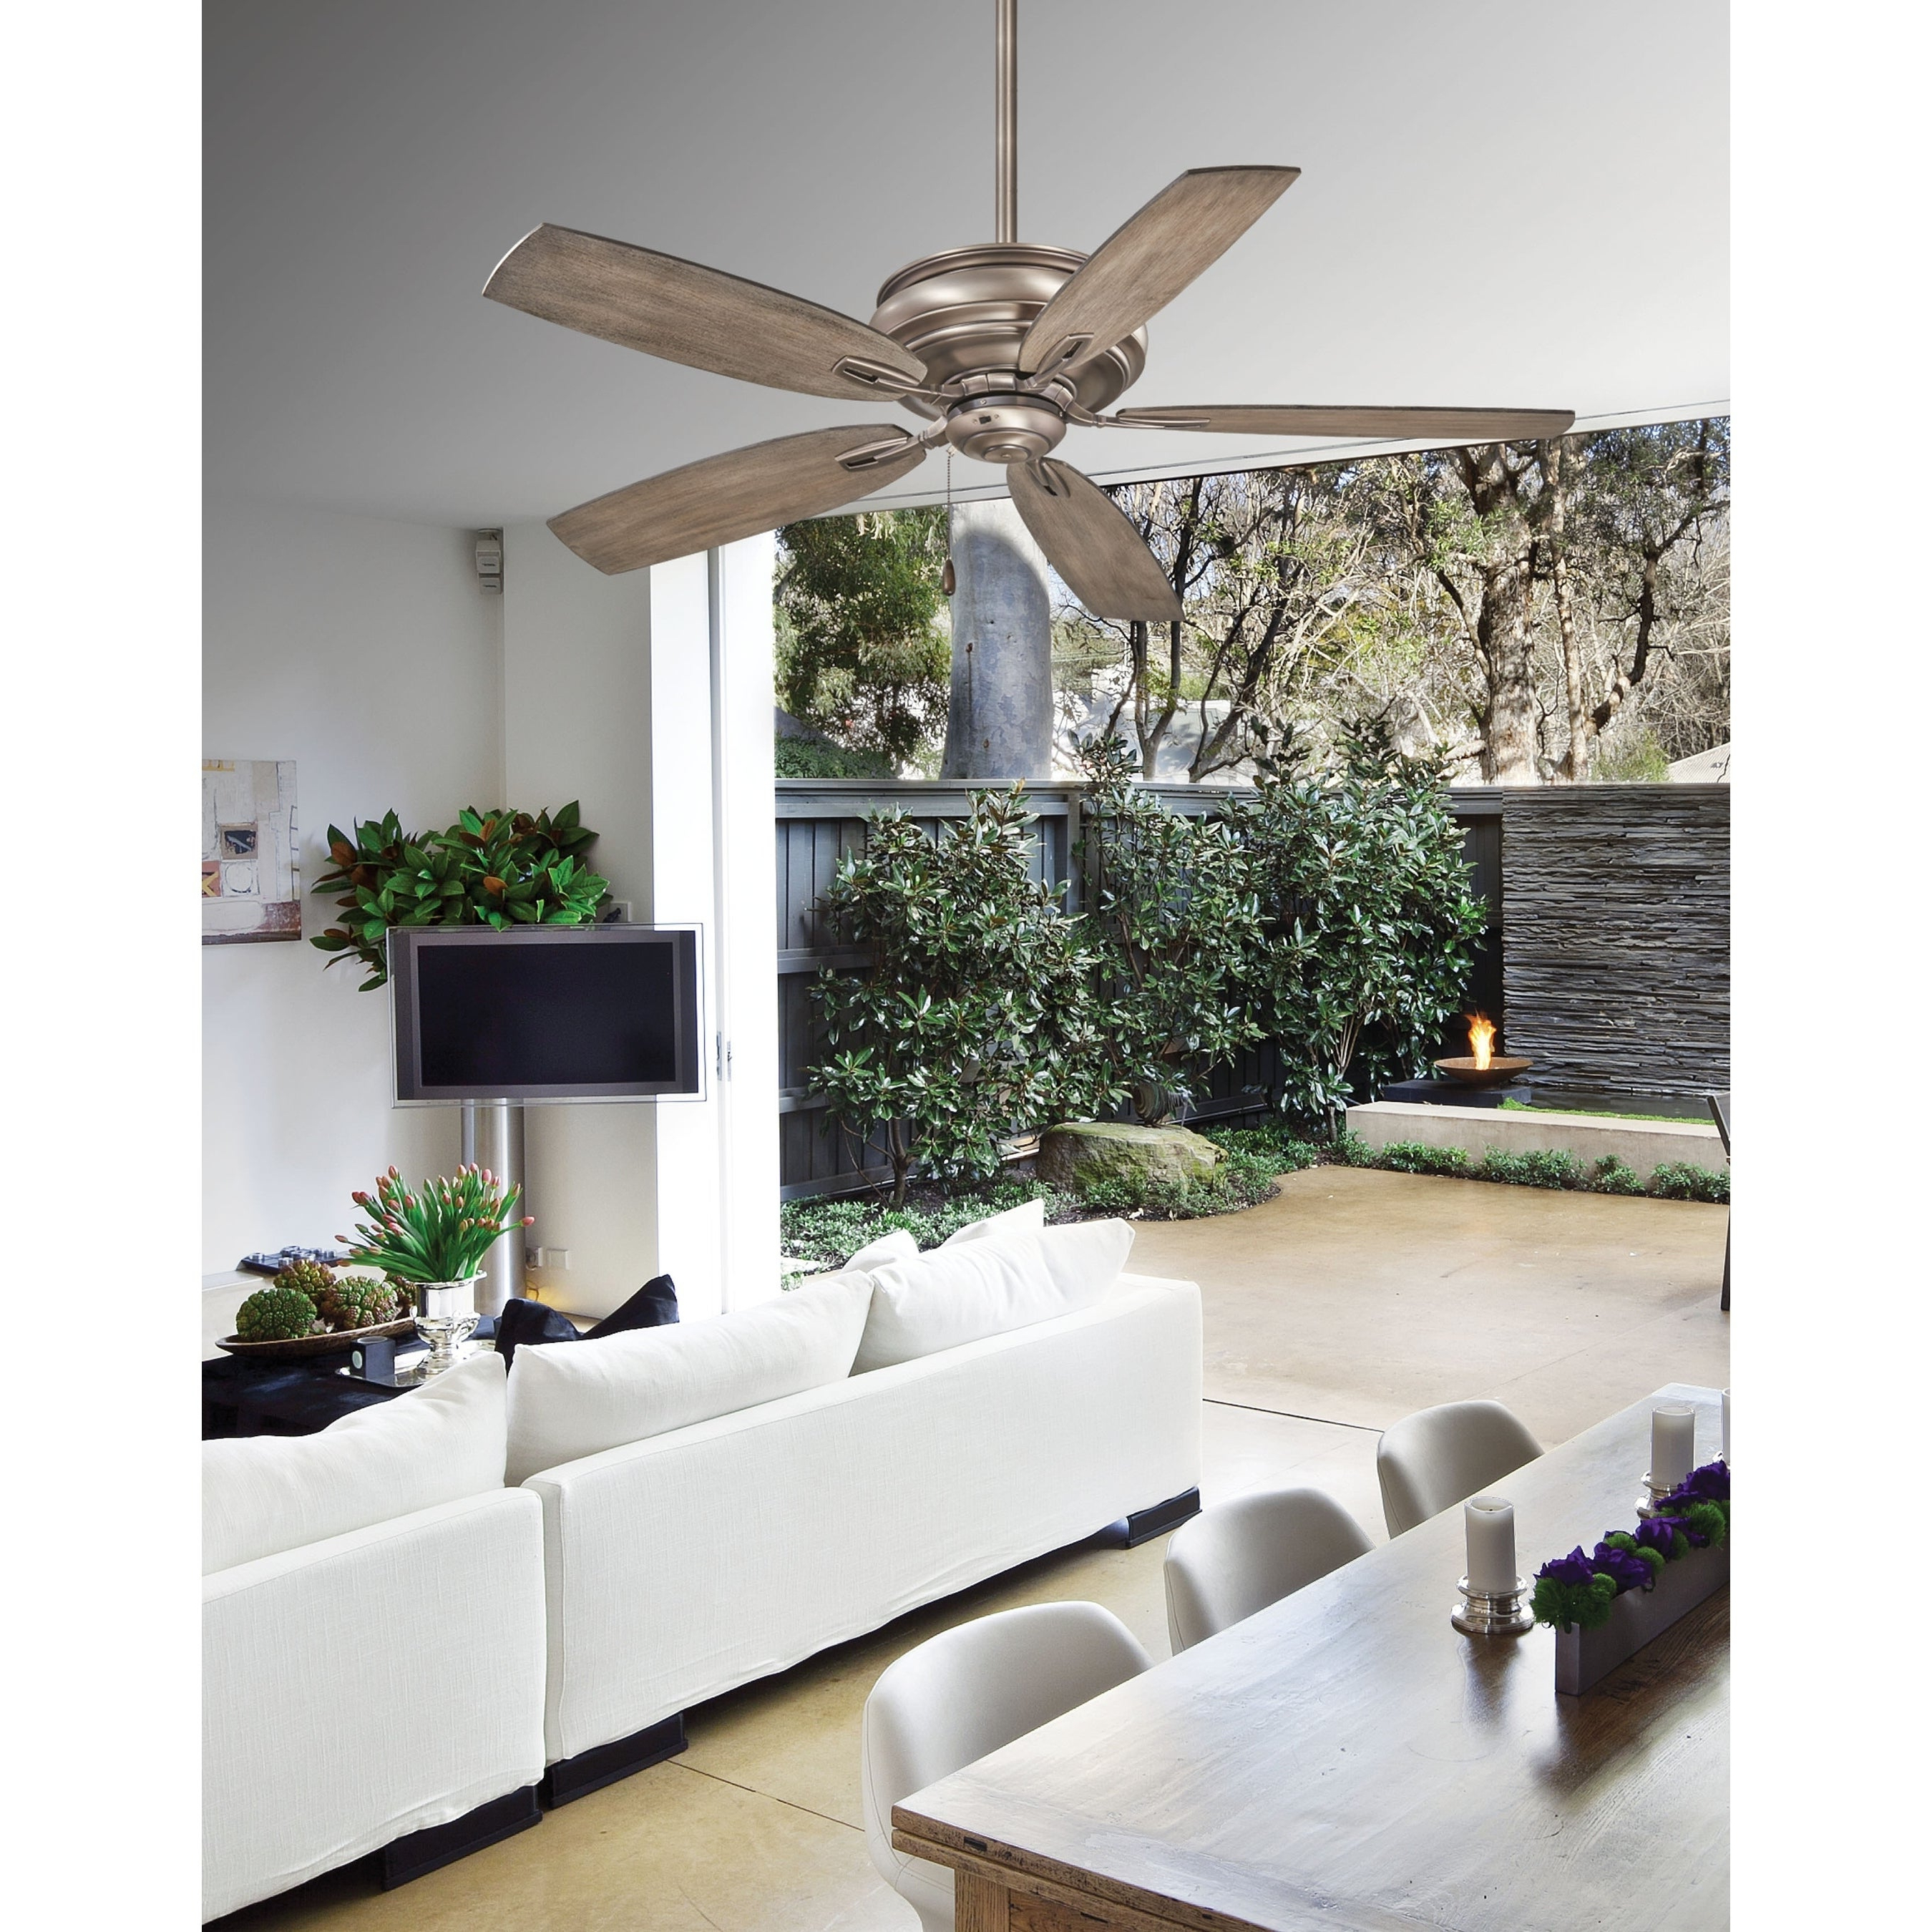 Timeless 5 Blade Ceiling Fans Within Famous Timeless Ceiling Fan In Burnished Nickel Finish W/ Seashore Grey Blades Minka Aire – N/a (View 7 of 20)